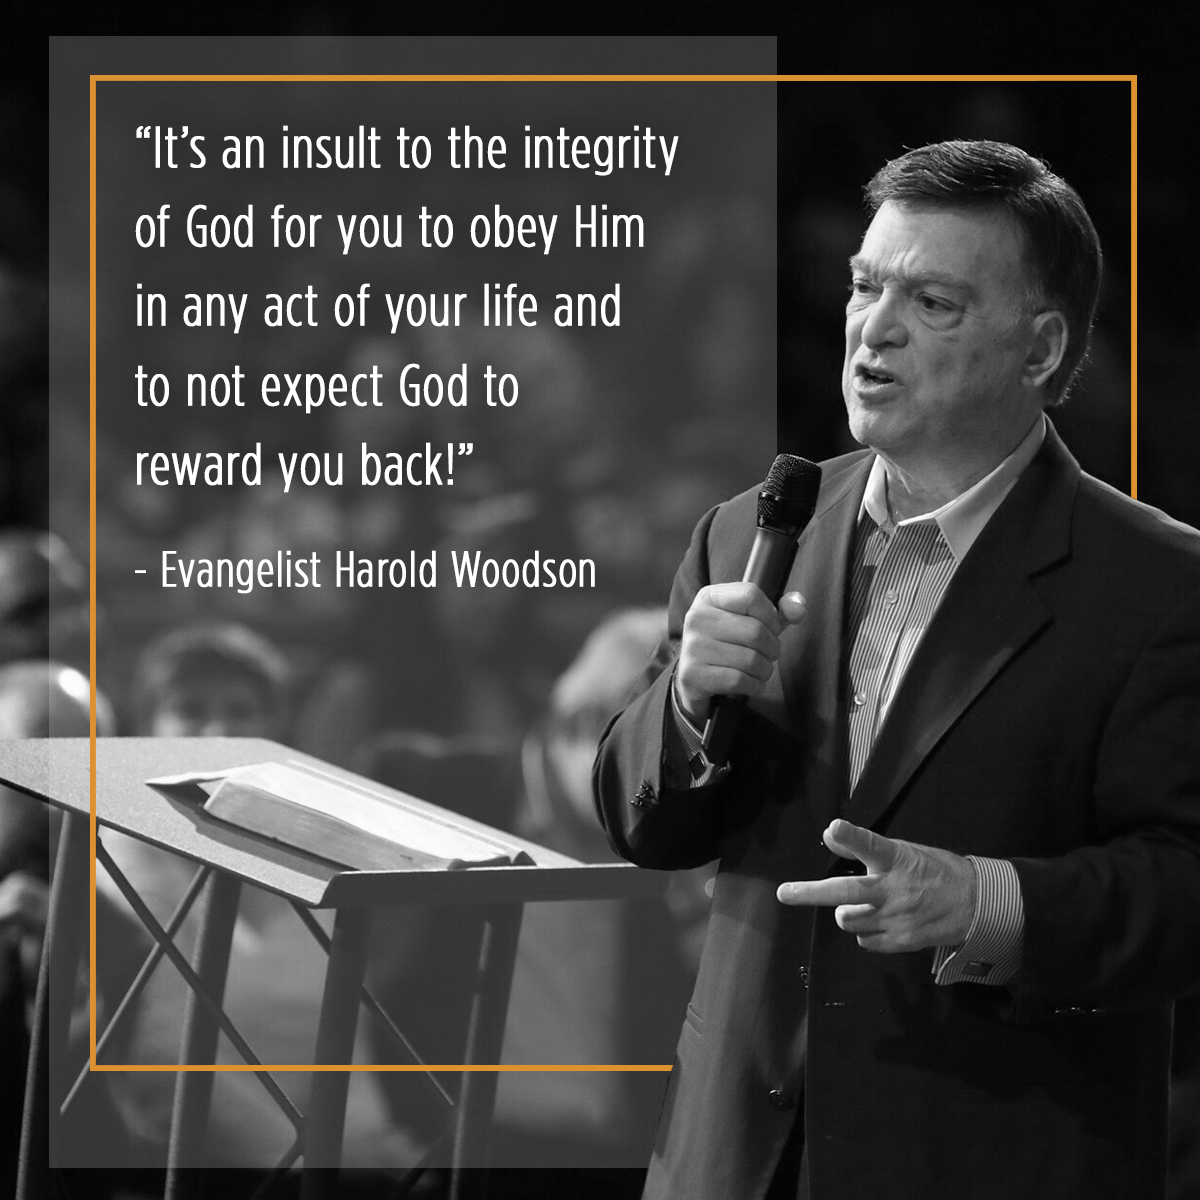 """It's an insult to the integrity of God for you to obey Him in any act of your life and to not expect God to reward you back!"" – Evangelist Harold Woodson"